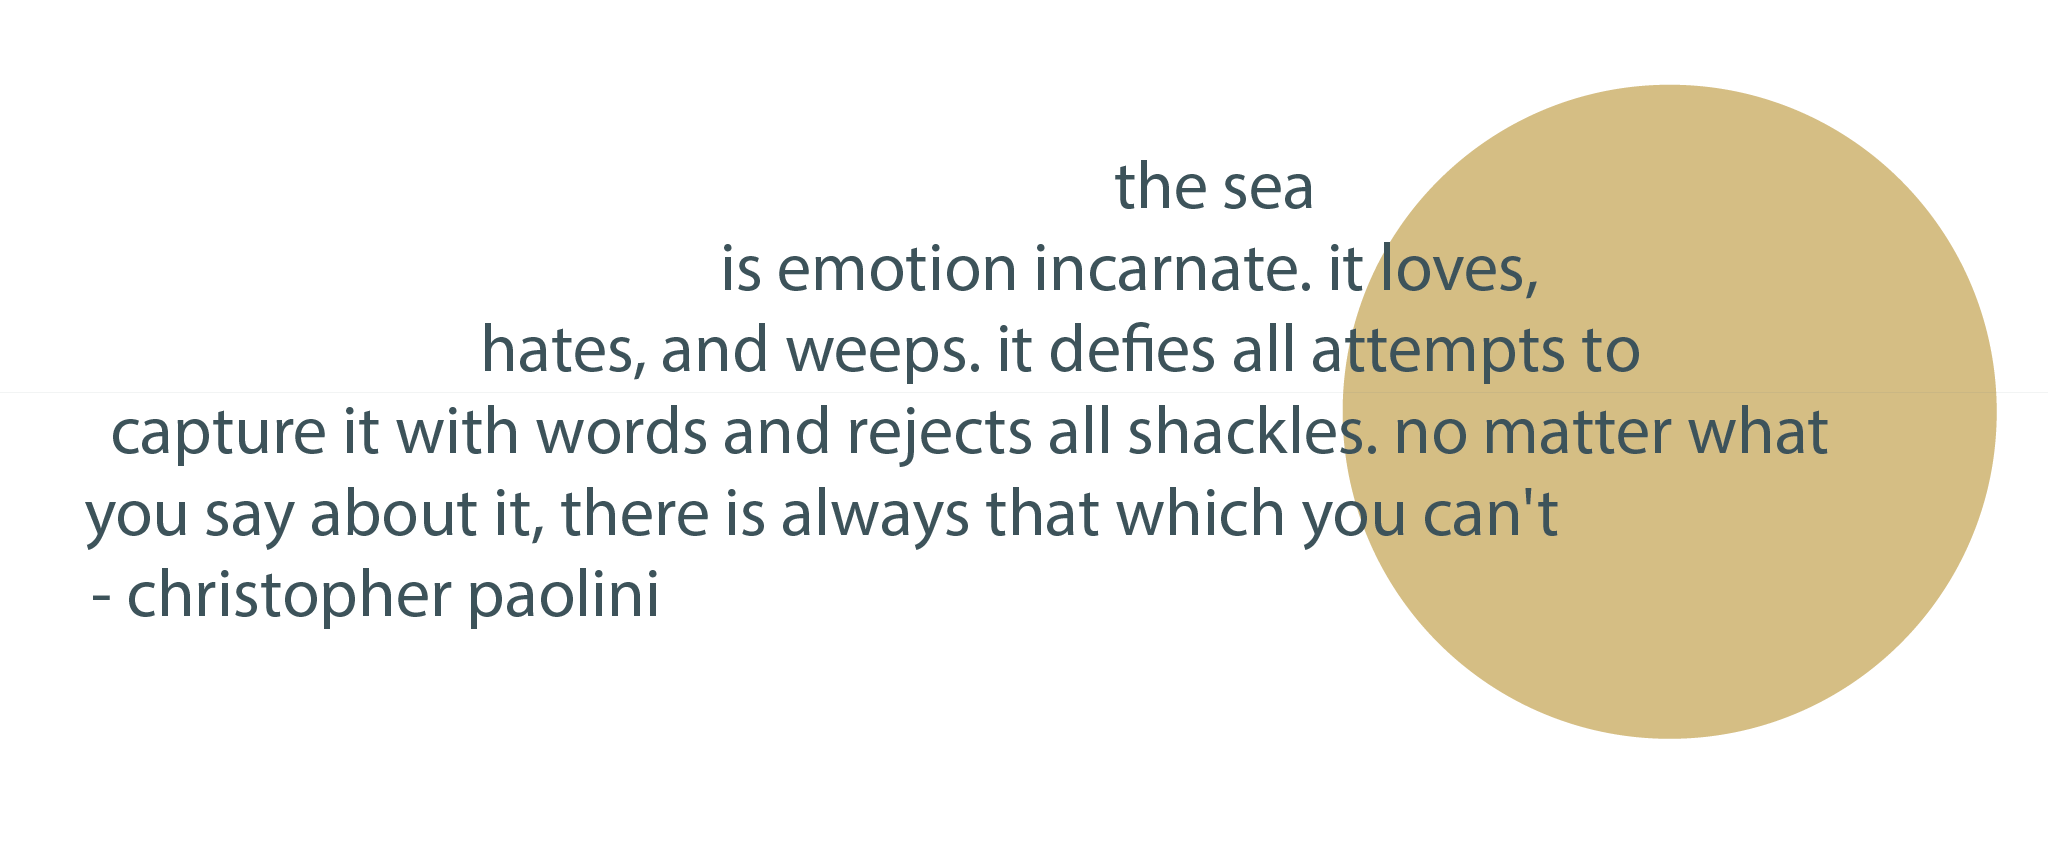 the sea is emotion incarnate. it loves, it hates, it weeps. it defies all attempts to capture with words and rejects all shackles. no matter what you say about it, there is always that which you can't. - christopher paolini